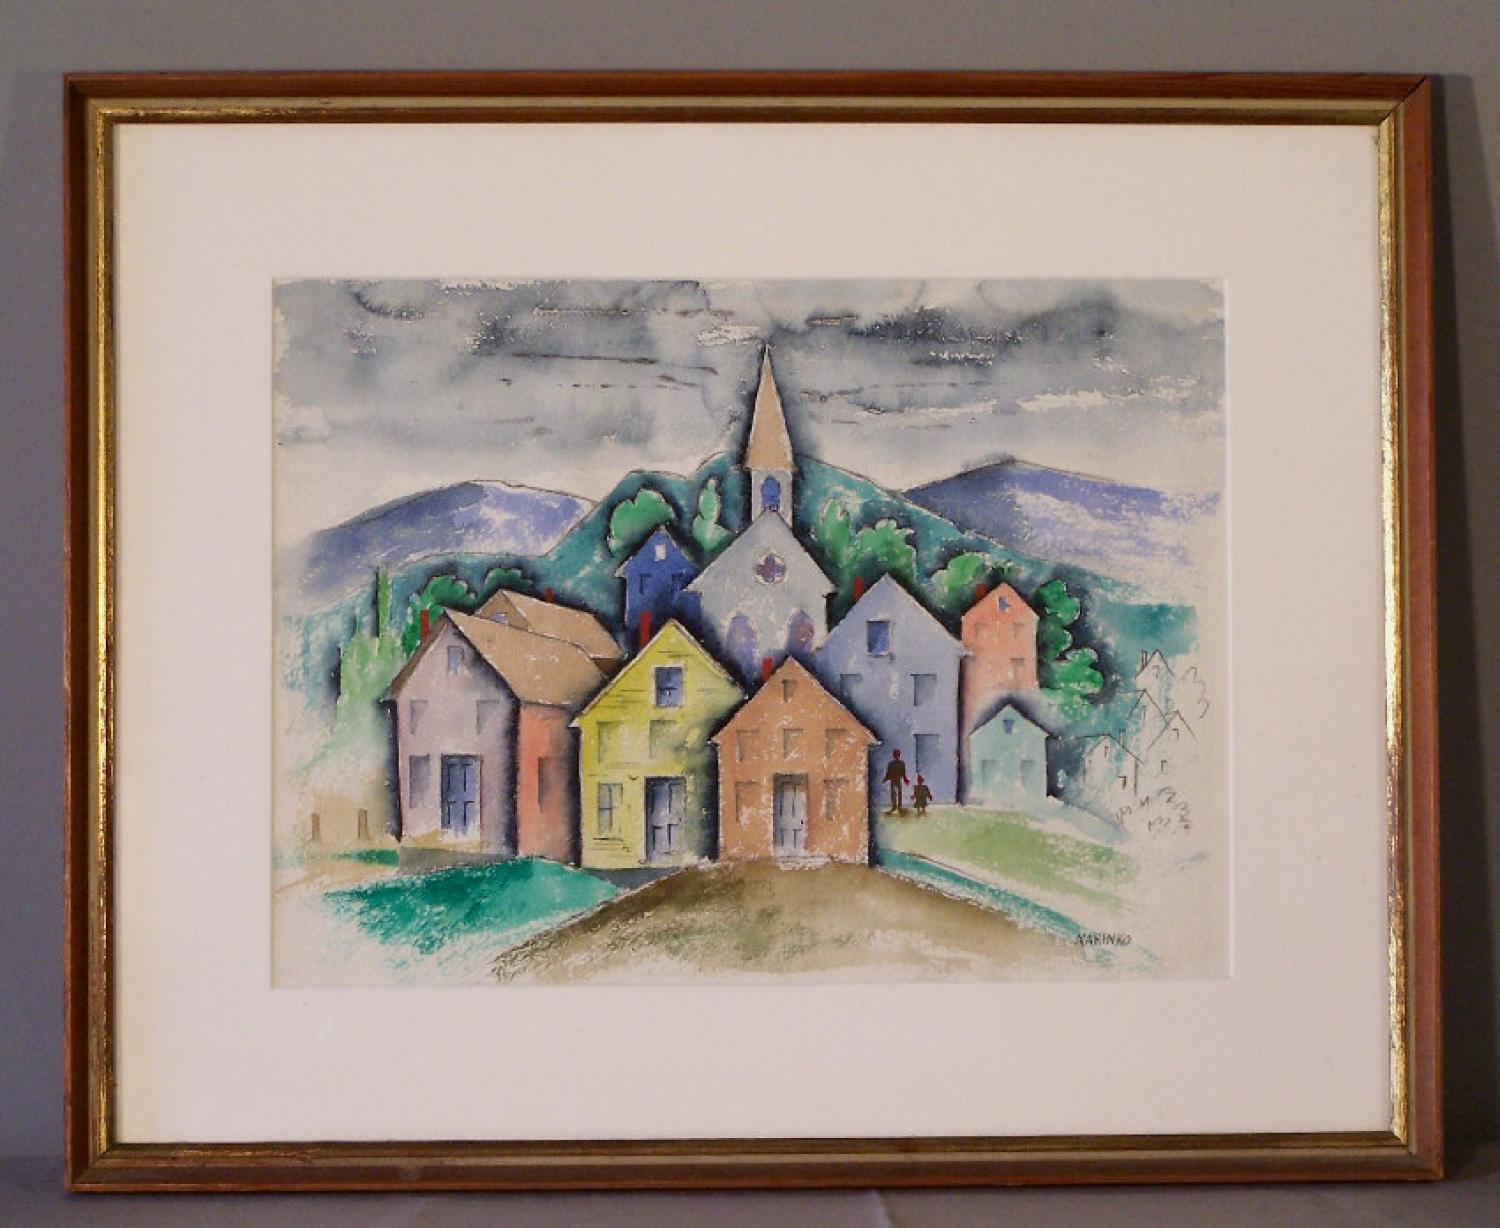 George Marinko cubist absrtact painting landscape on paper c1940